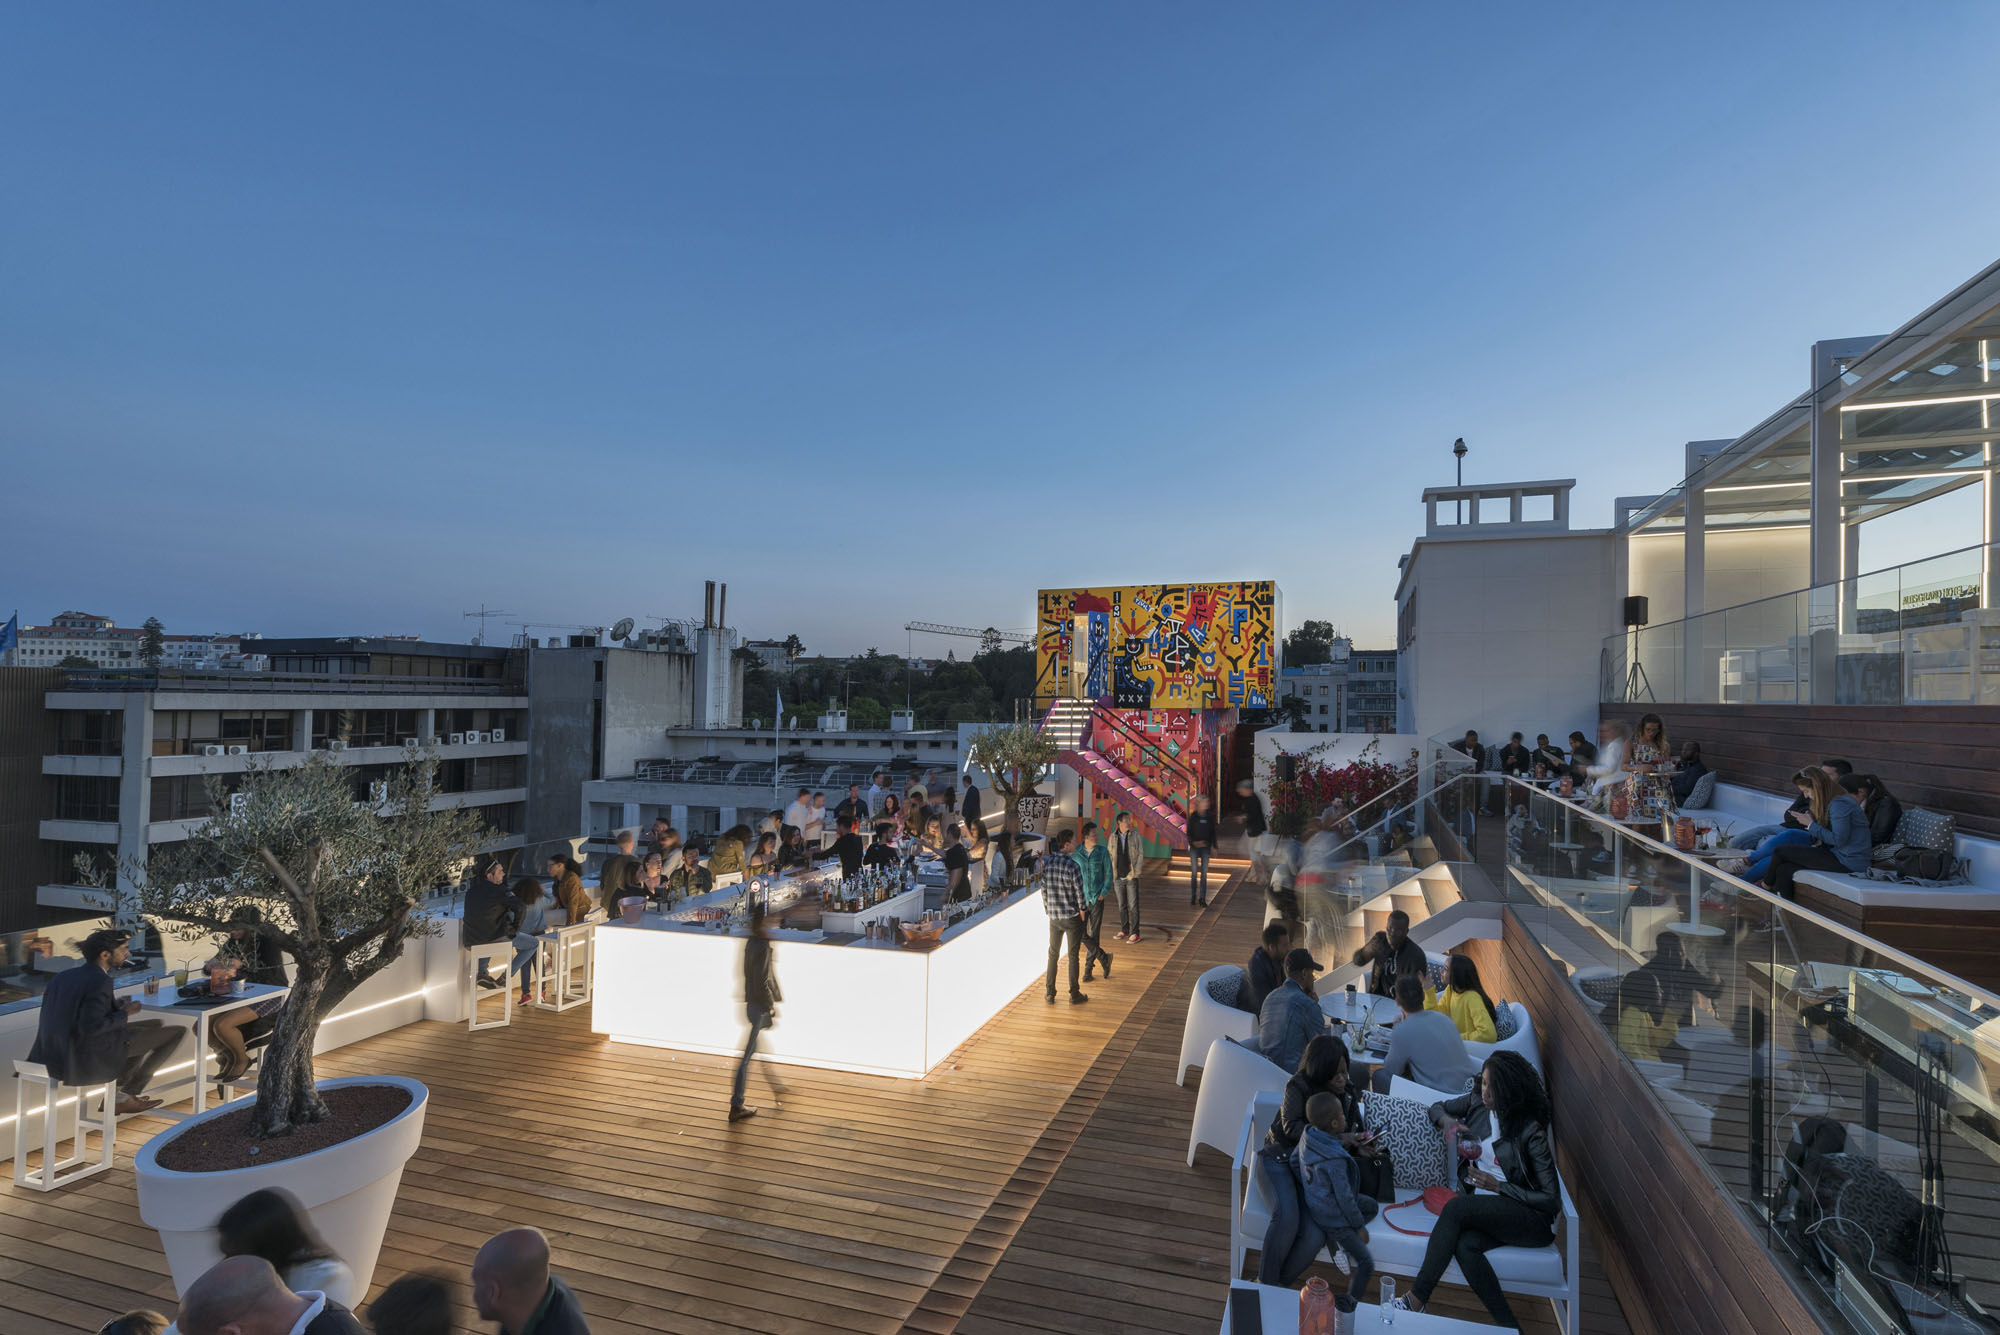 The Best Rooftop Bars in Portugal best rooftop bars in portugal The Best Rooftop Bars in Portugal sky bar 2